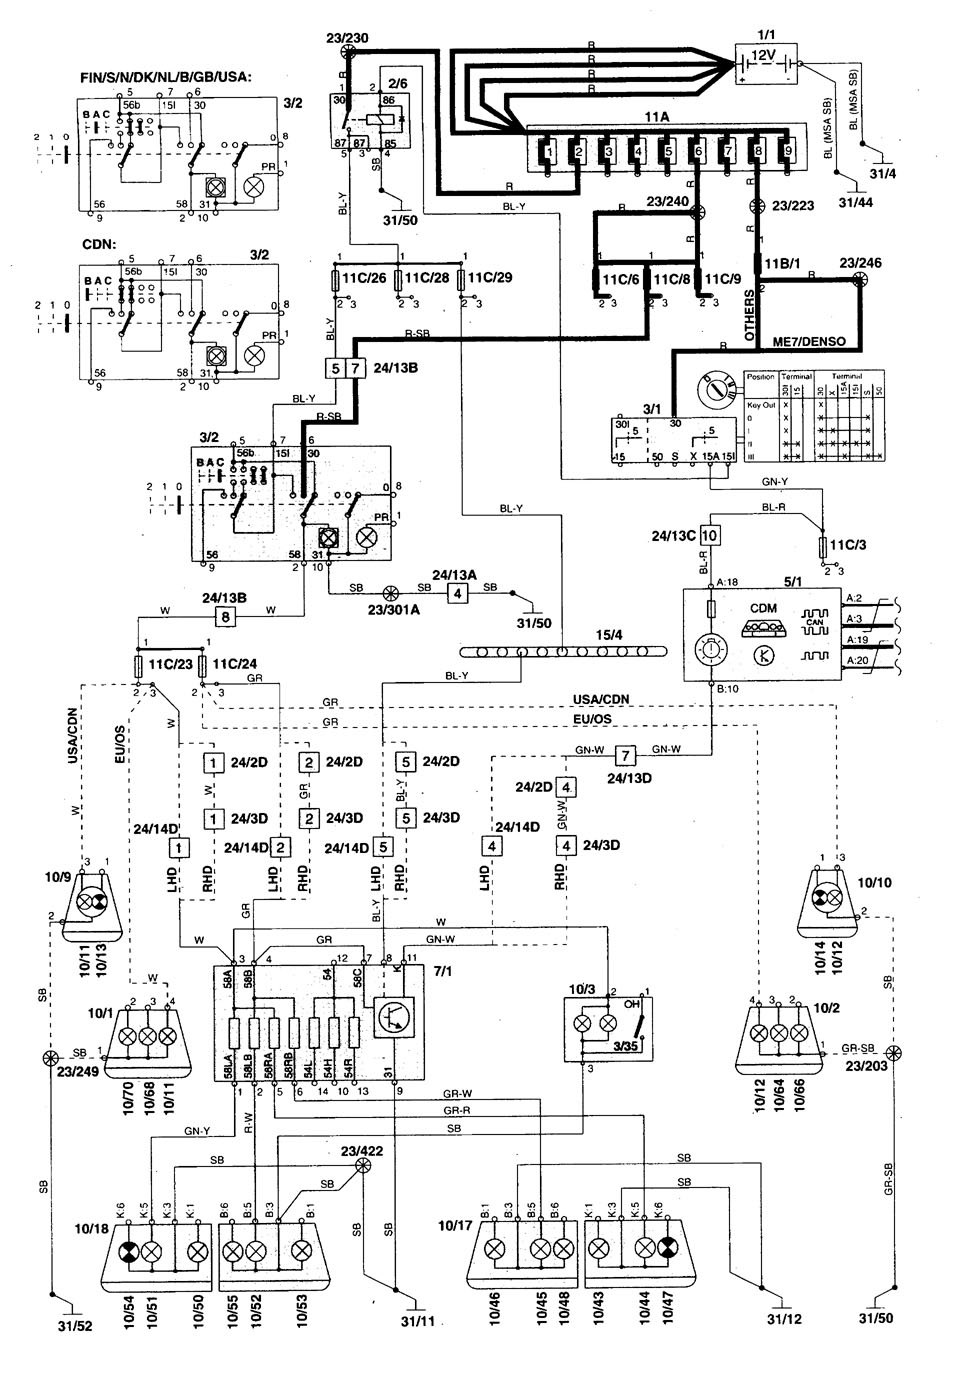 hight resolution of 2000 volvo s70 wiring diagram wiring diagrams terms 2000 volvo s70 radio wiring diagram 2000 volvo s70 wiring diagram